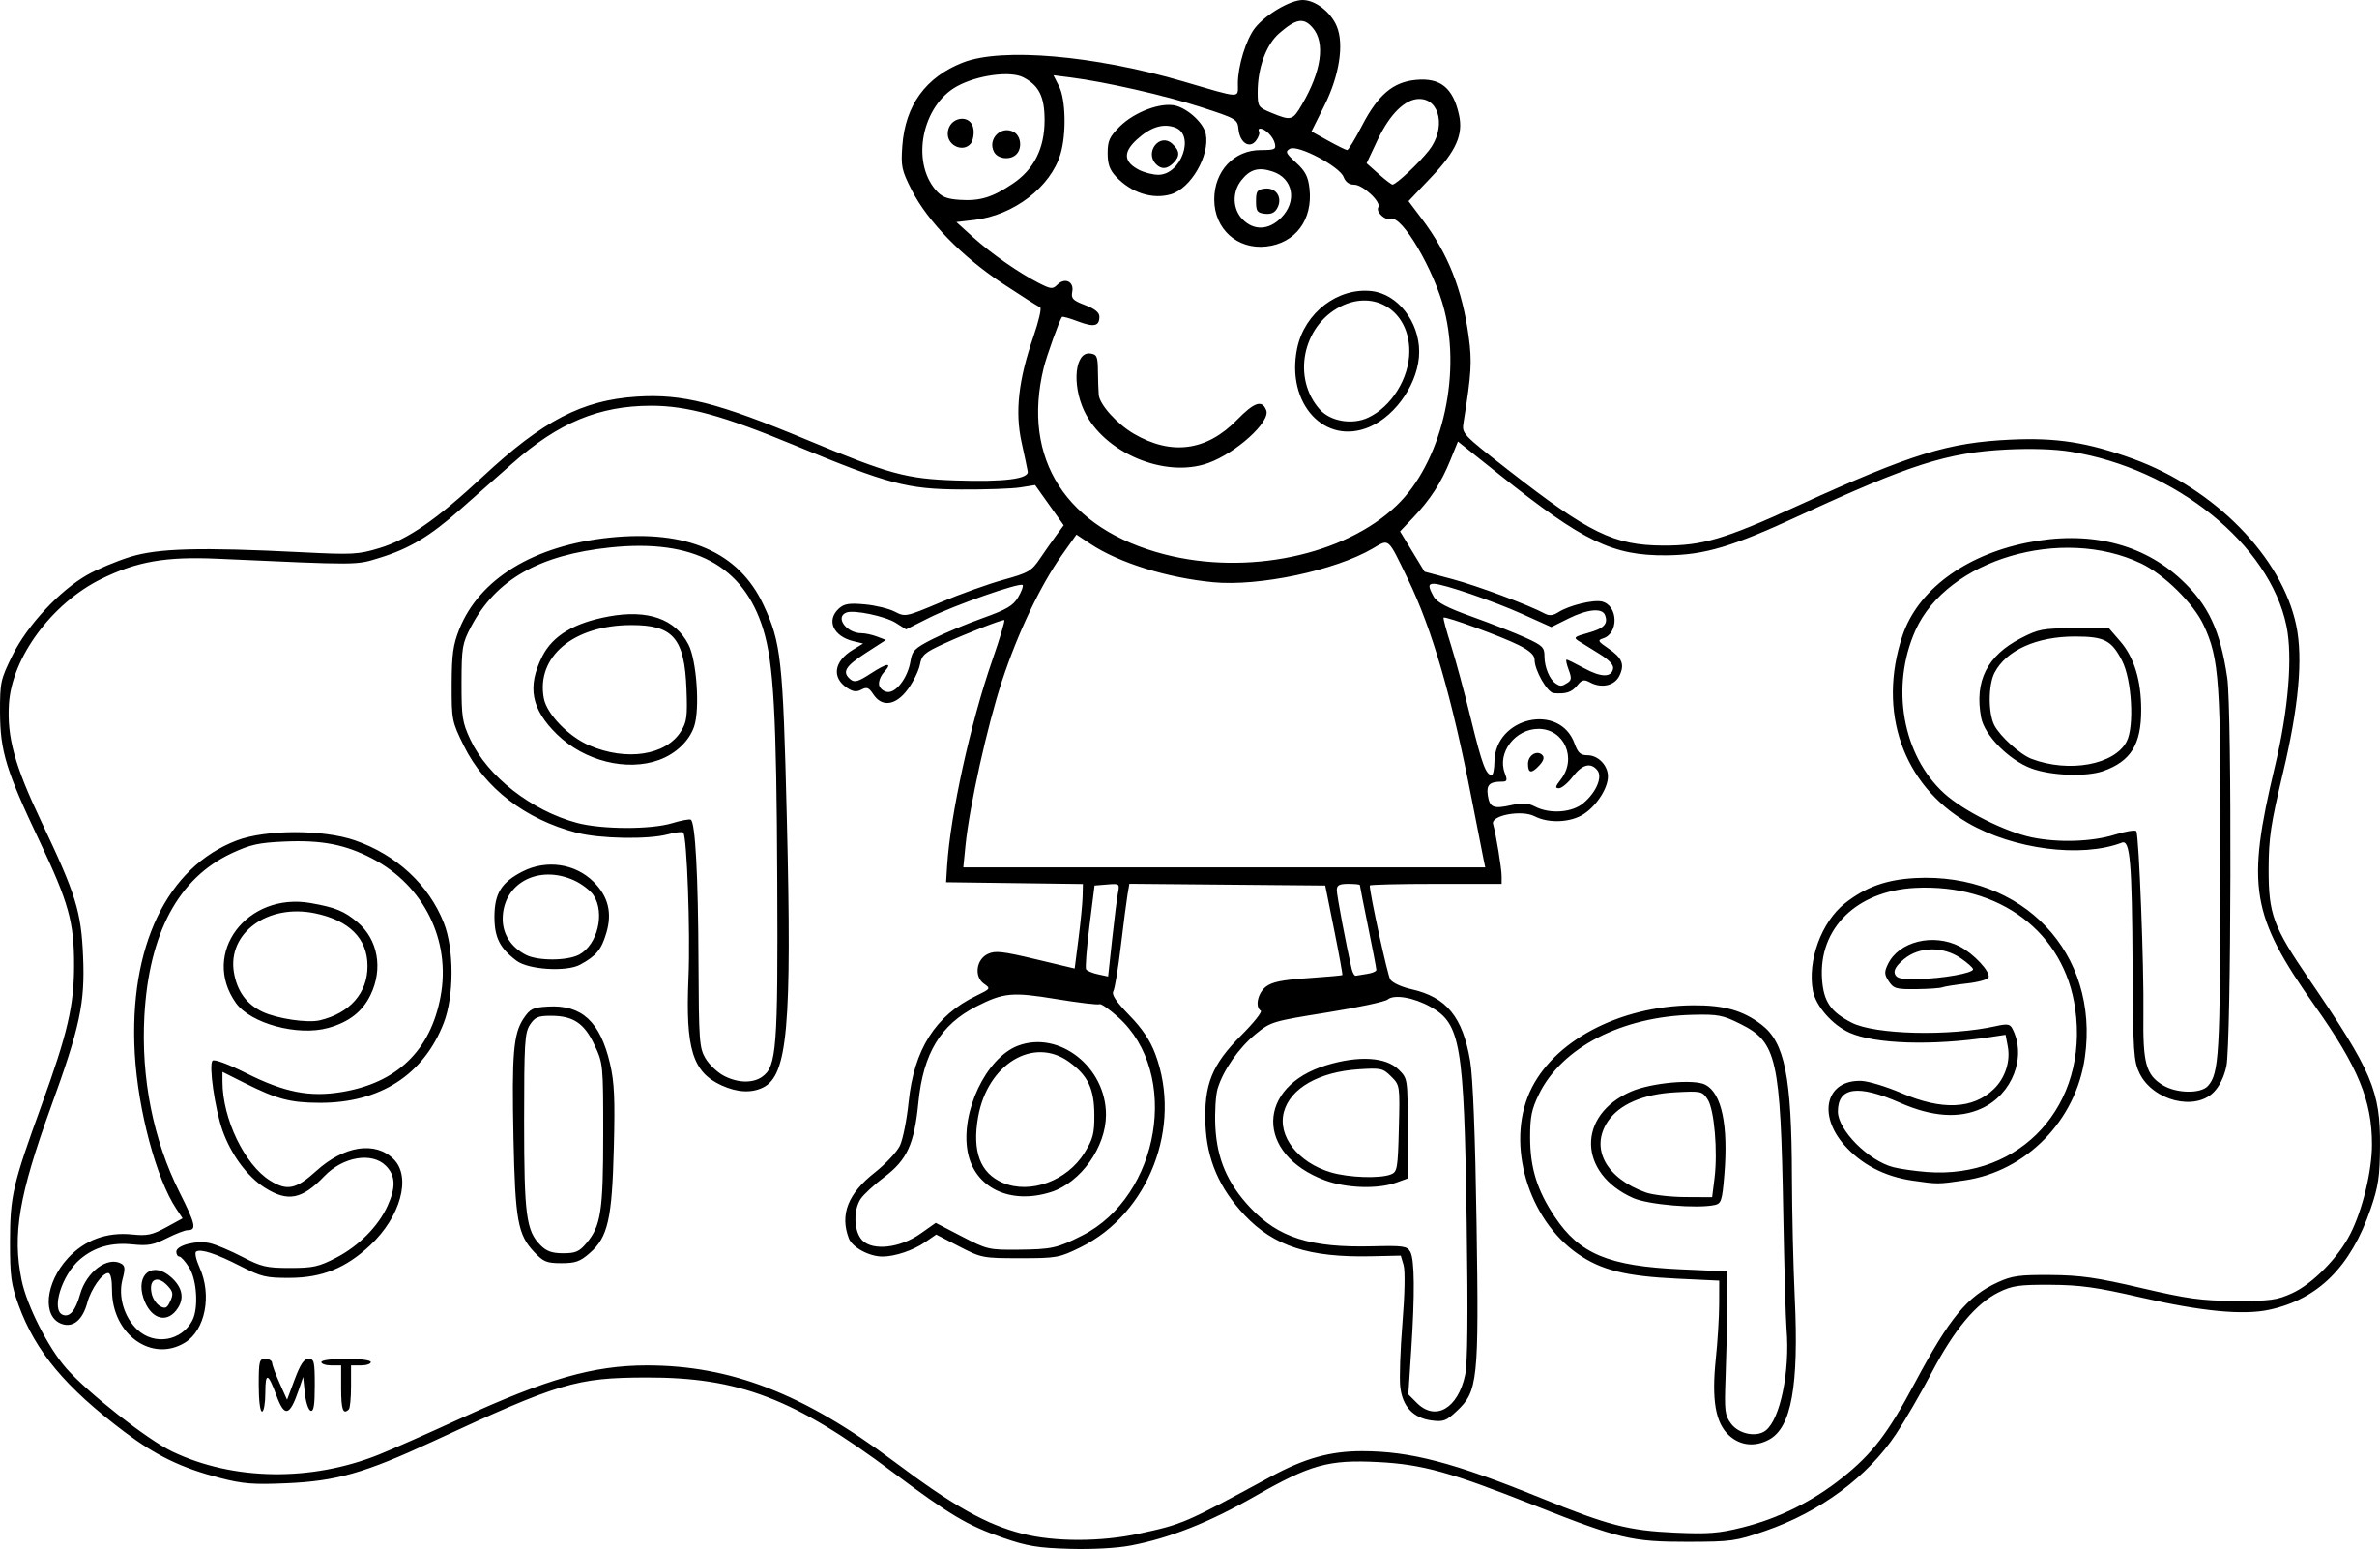 Coloriage De Peppa Pig à Imprimer Unique Photos Inspirant Dessins   Colorier Peppa Pig – Mademoiselleosaki